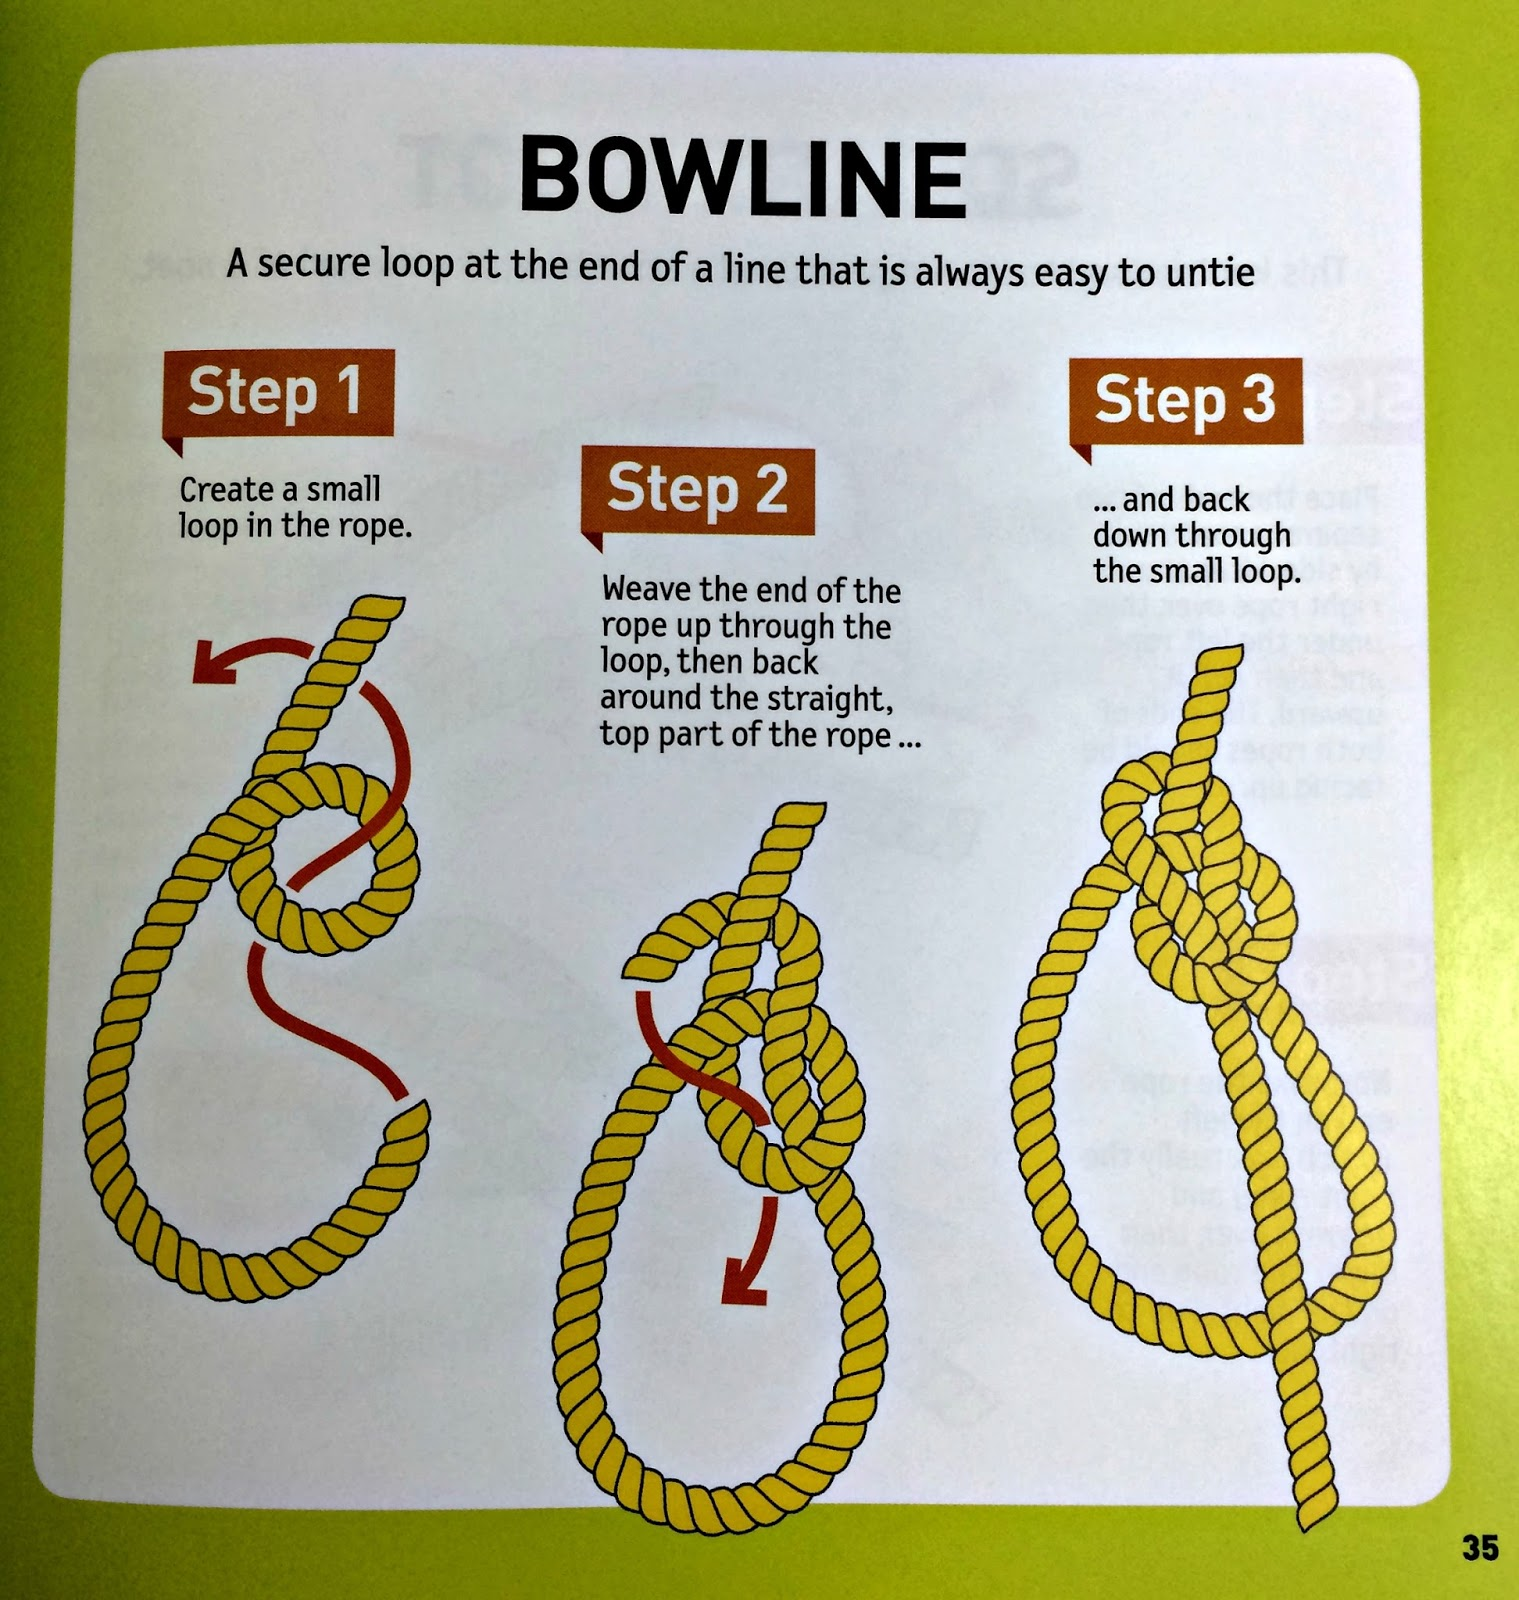 A Geek Daddy 100 Things To Know Before You Grow Up Bowline Knot Gif The Pronounced 39 In Addition Charts Pictures And Diagrams Like Ones Pictured Above That Demonstrate Important Skills Have